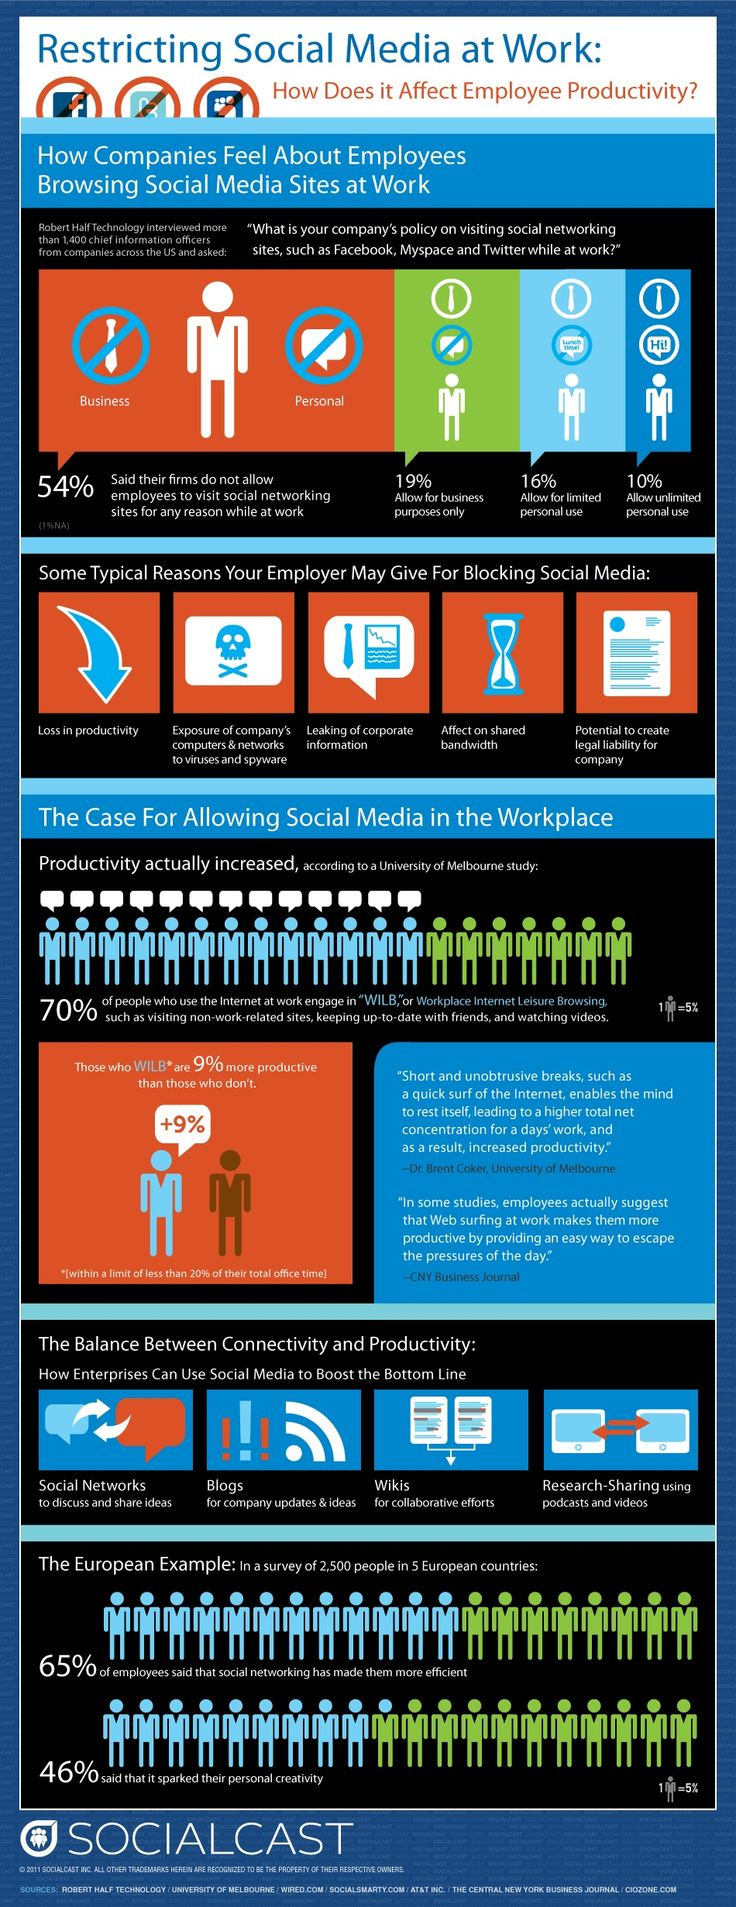 """""""No Tweeting!"""" How Restricting Social Media At Work Affects Productivity [INFOGRAPHIC]"""